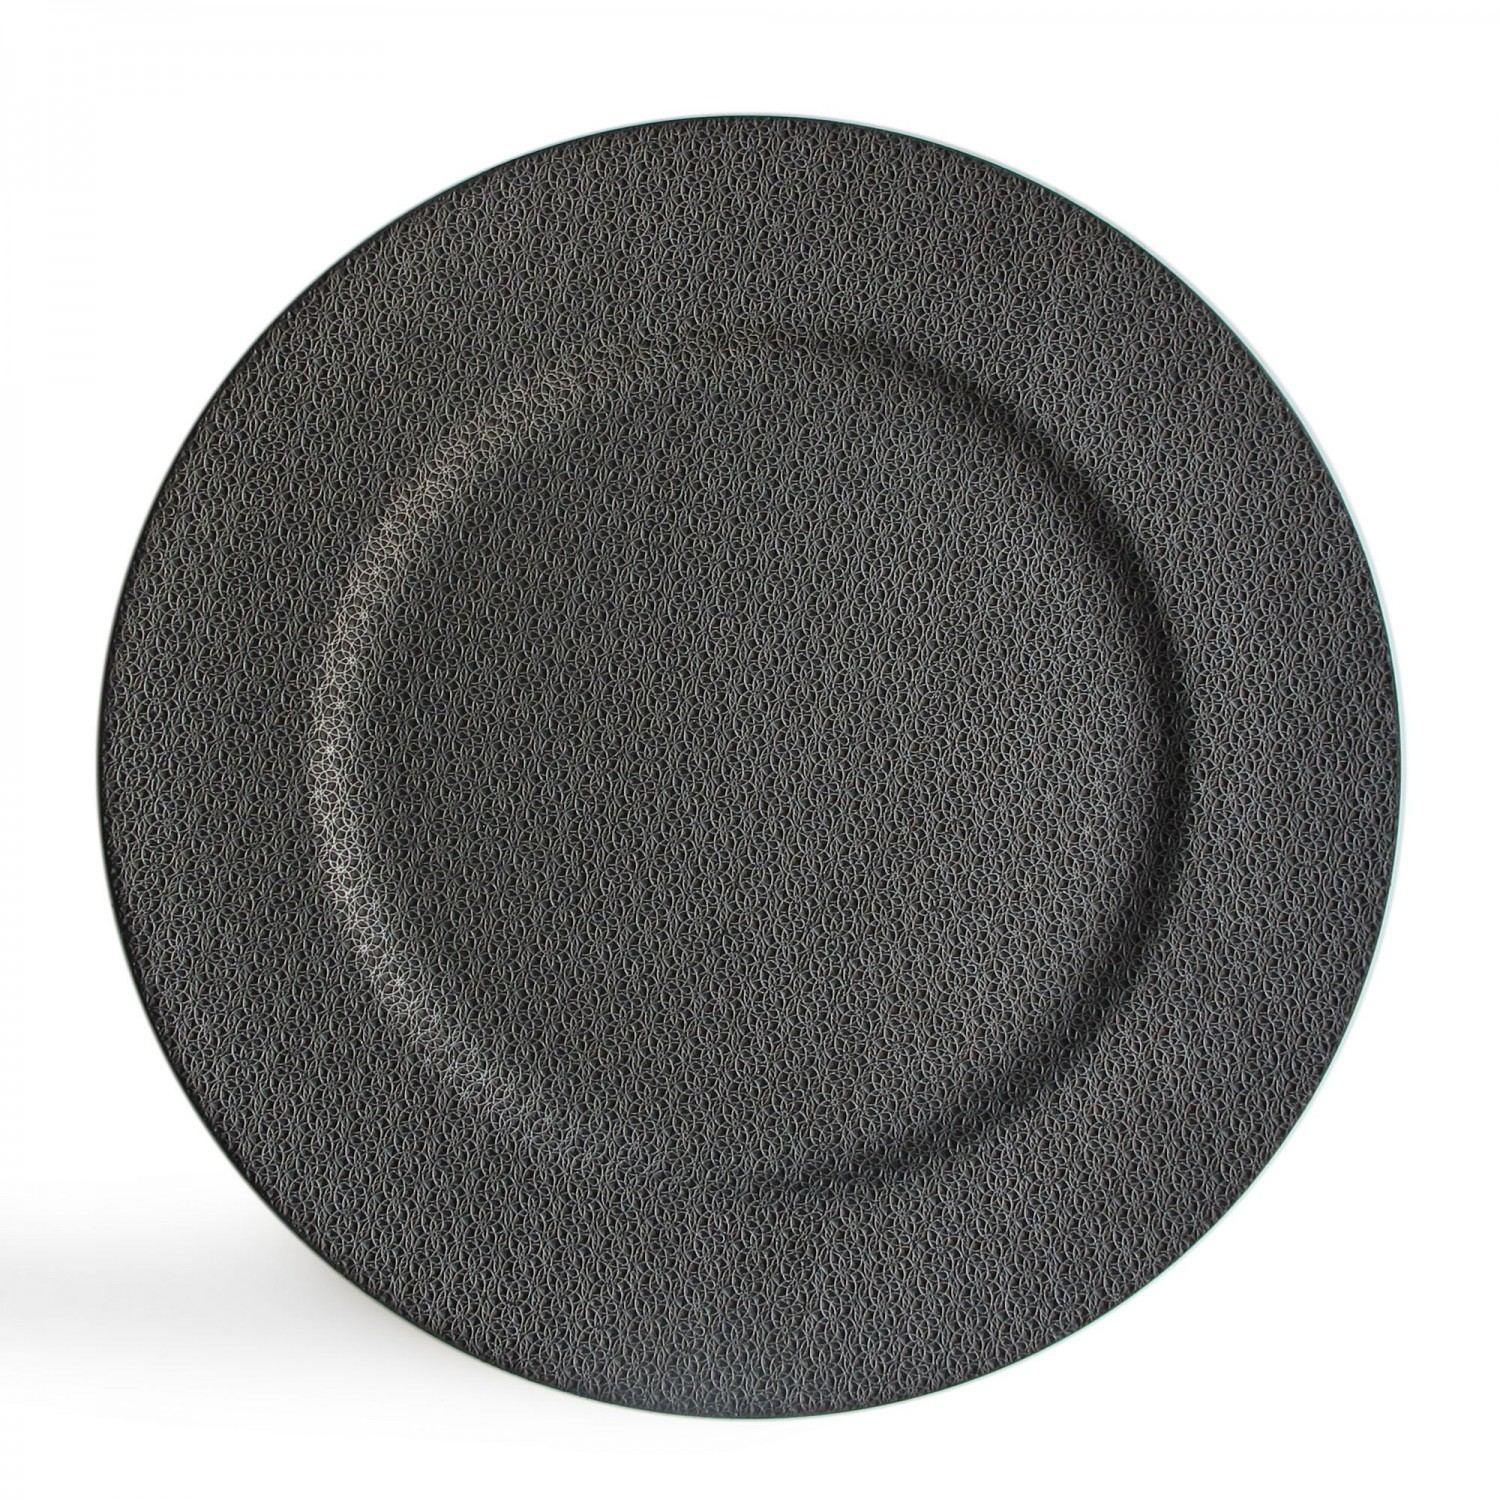 The Jay Companies 1320382 Round Textured Ash Gray Charger Plate 14""